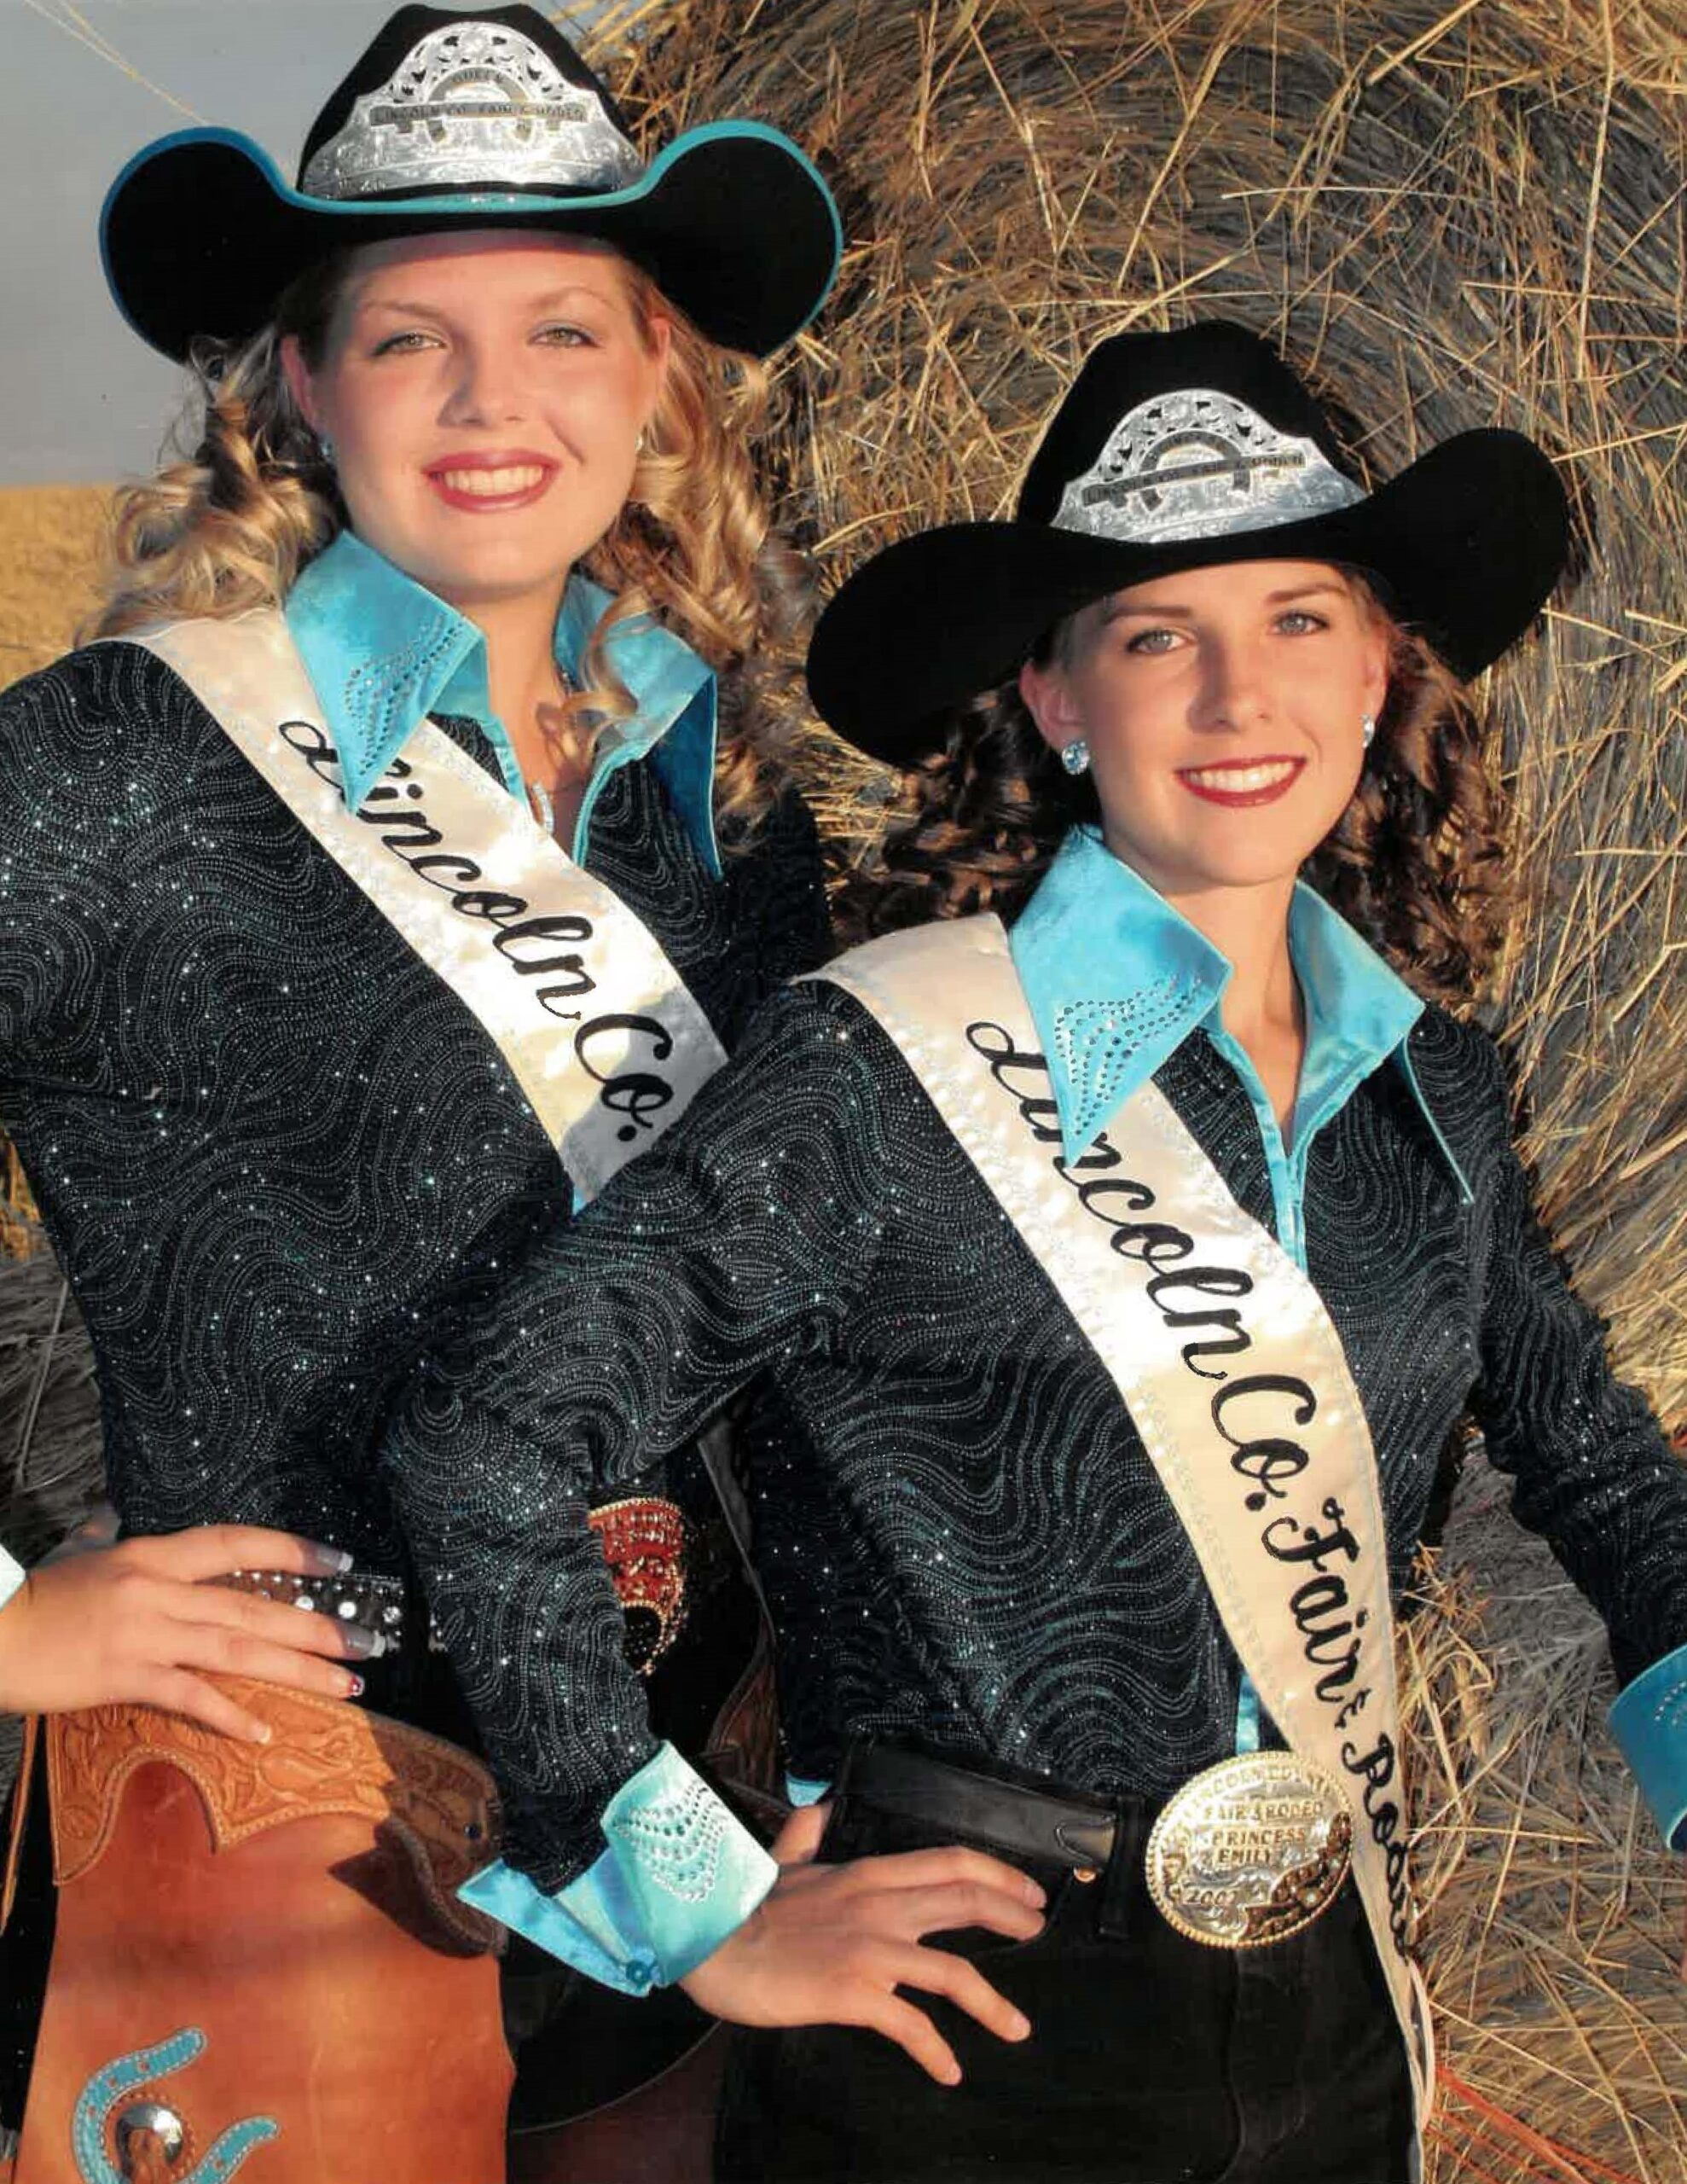 Lincoln County Fair & Rodeo Royalty 2007